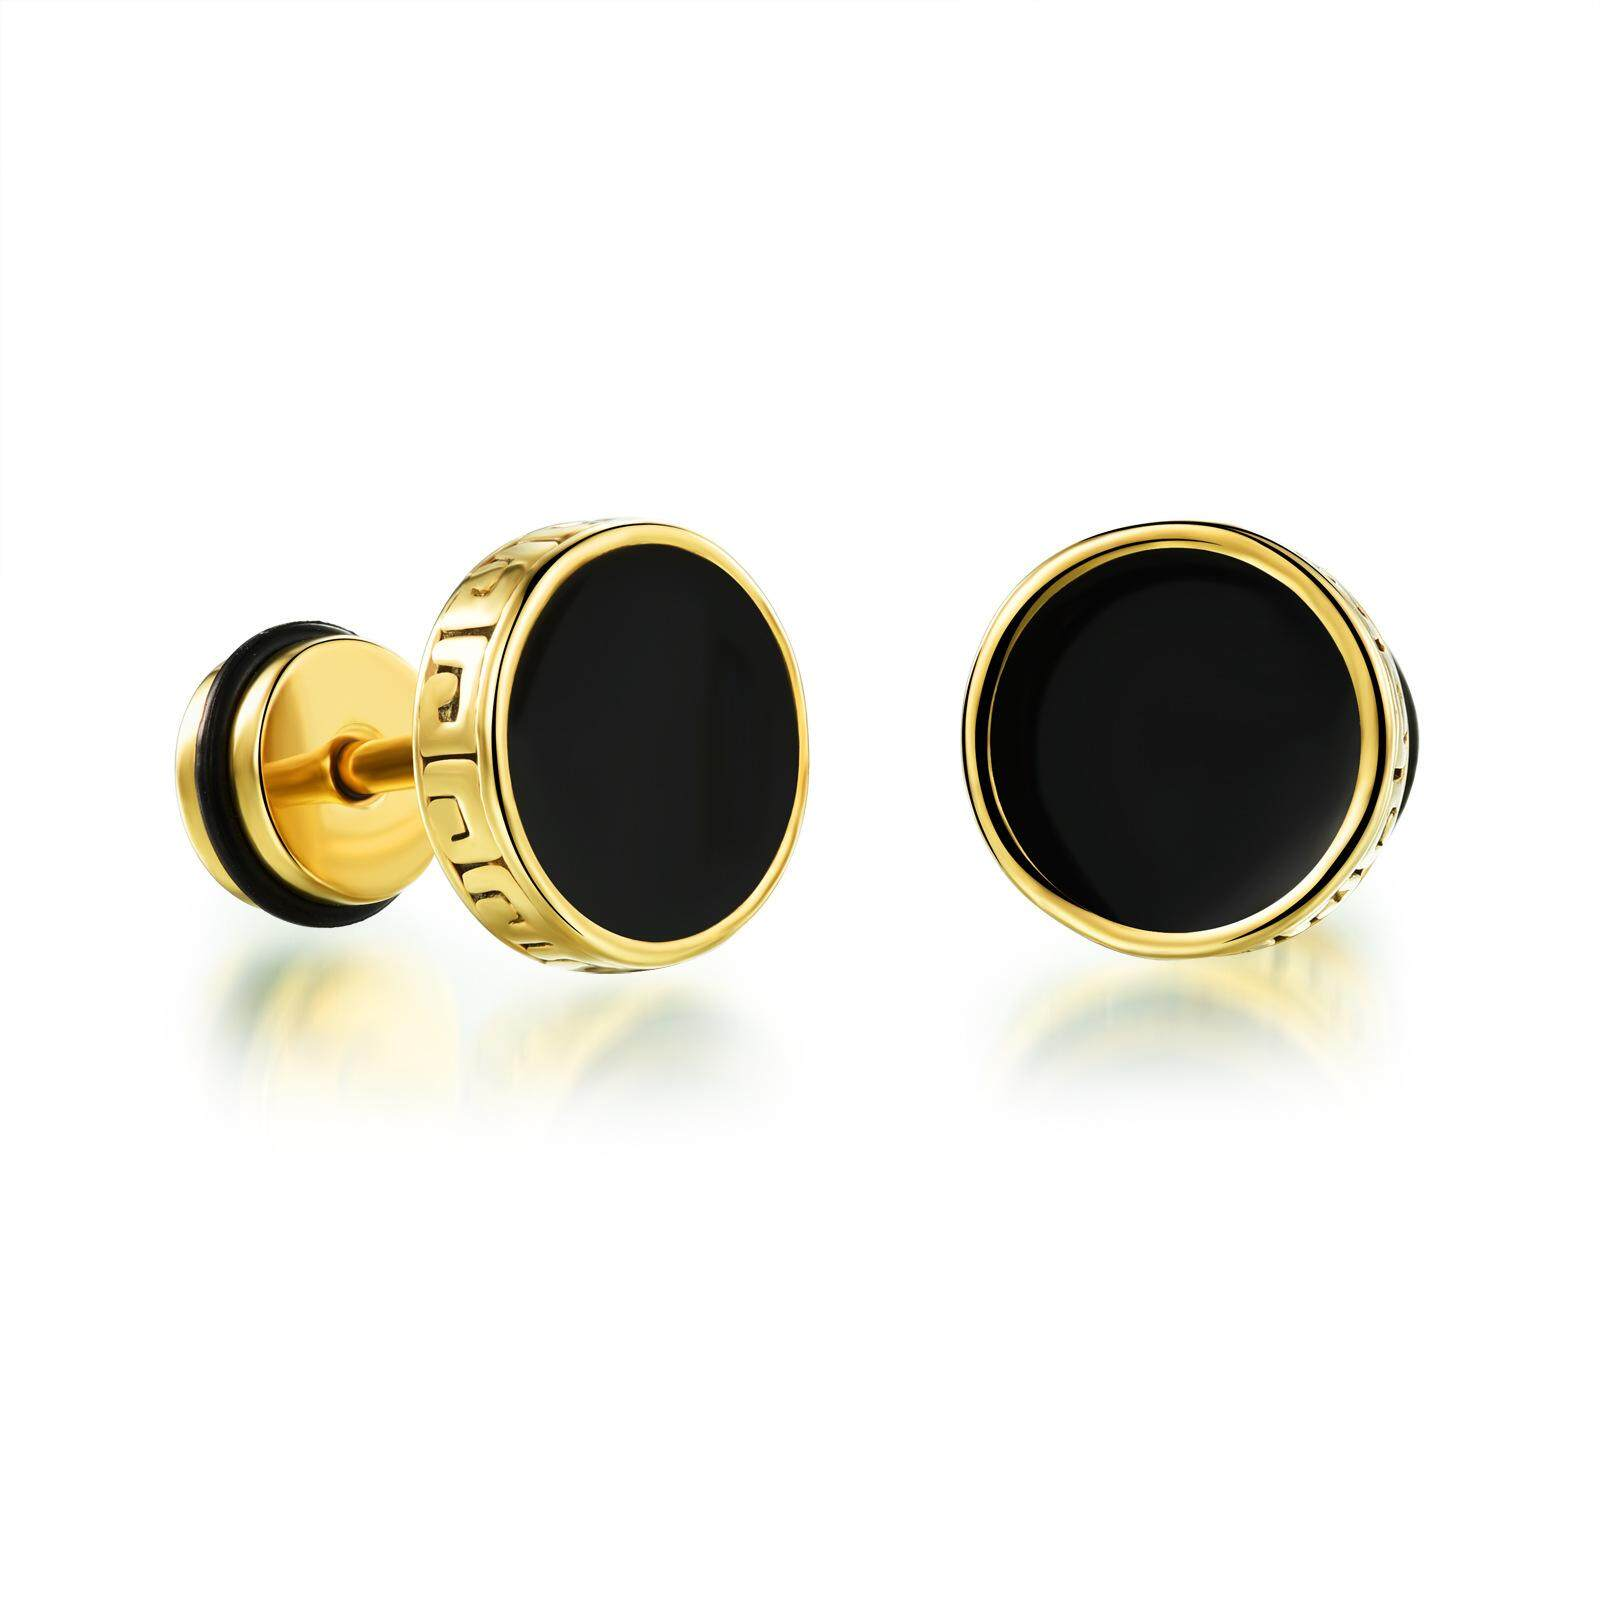 Men Rock Round Pie Retro Black Drop Earrings Male Fashion High Quality Stud Earrings By Xhc.